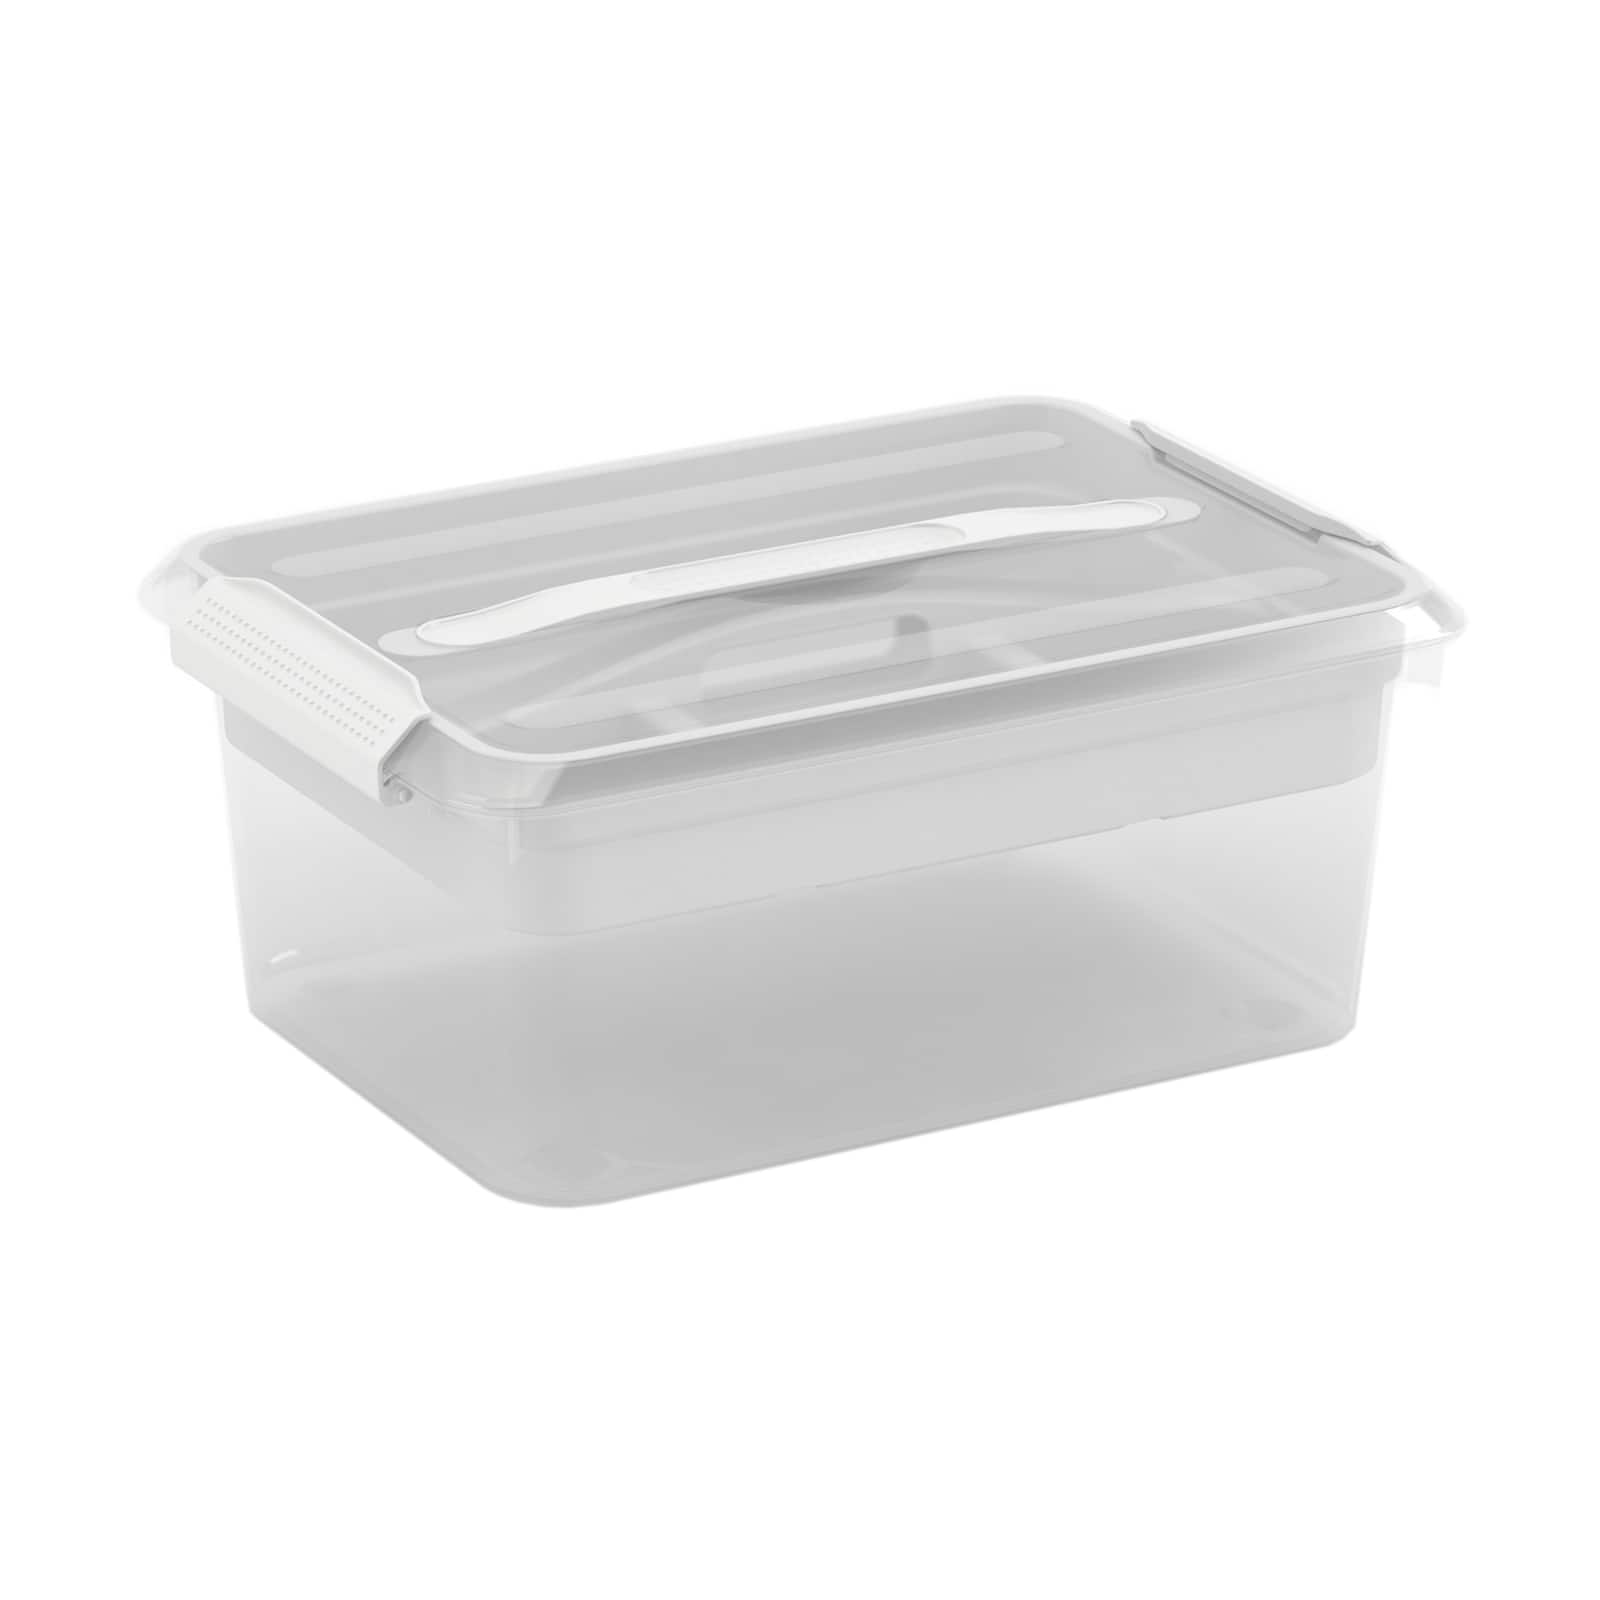 Latchmate White Storage Box With Tray By Recollections™